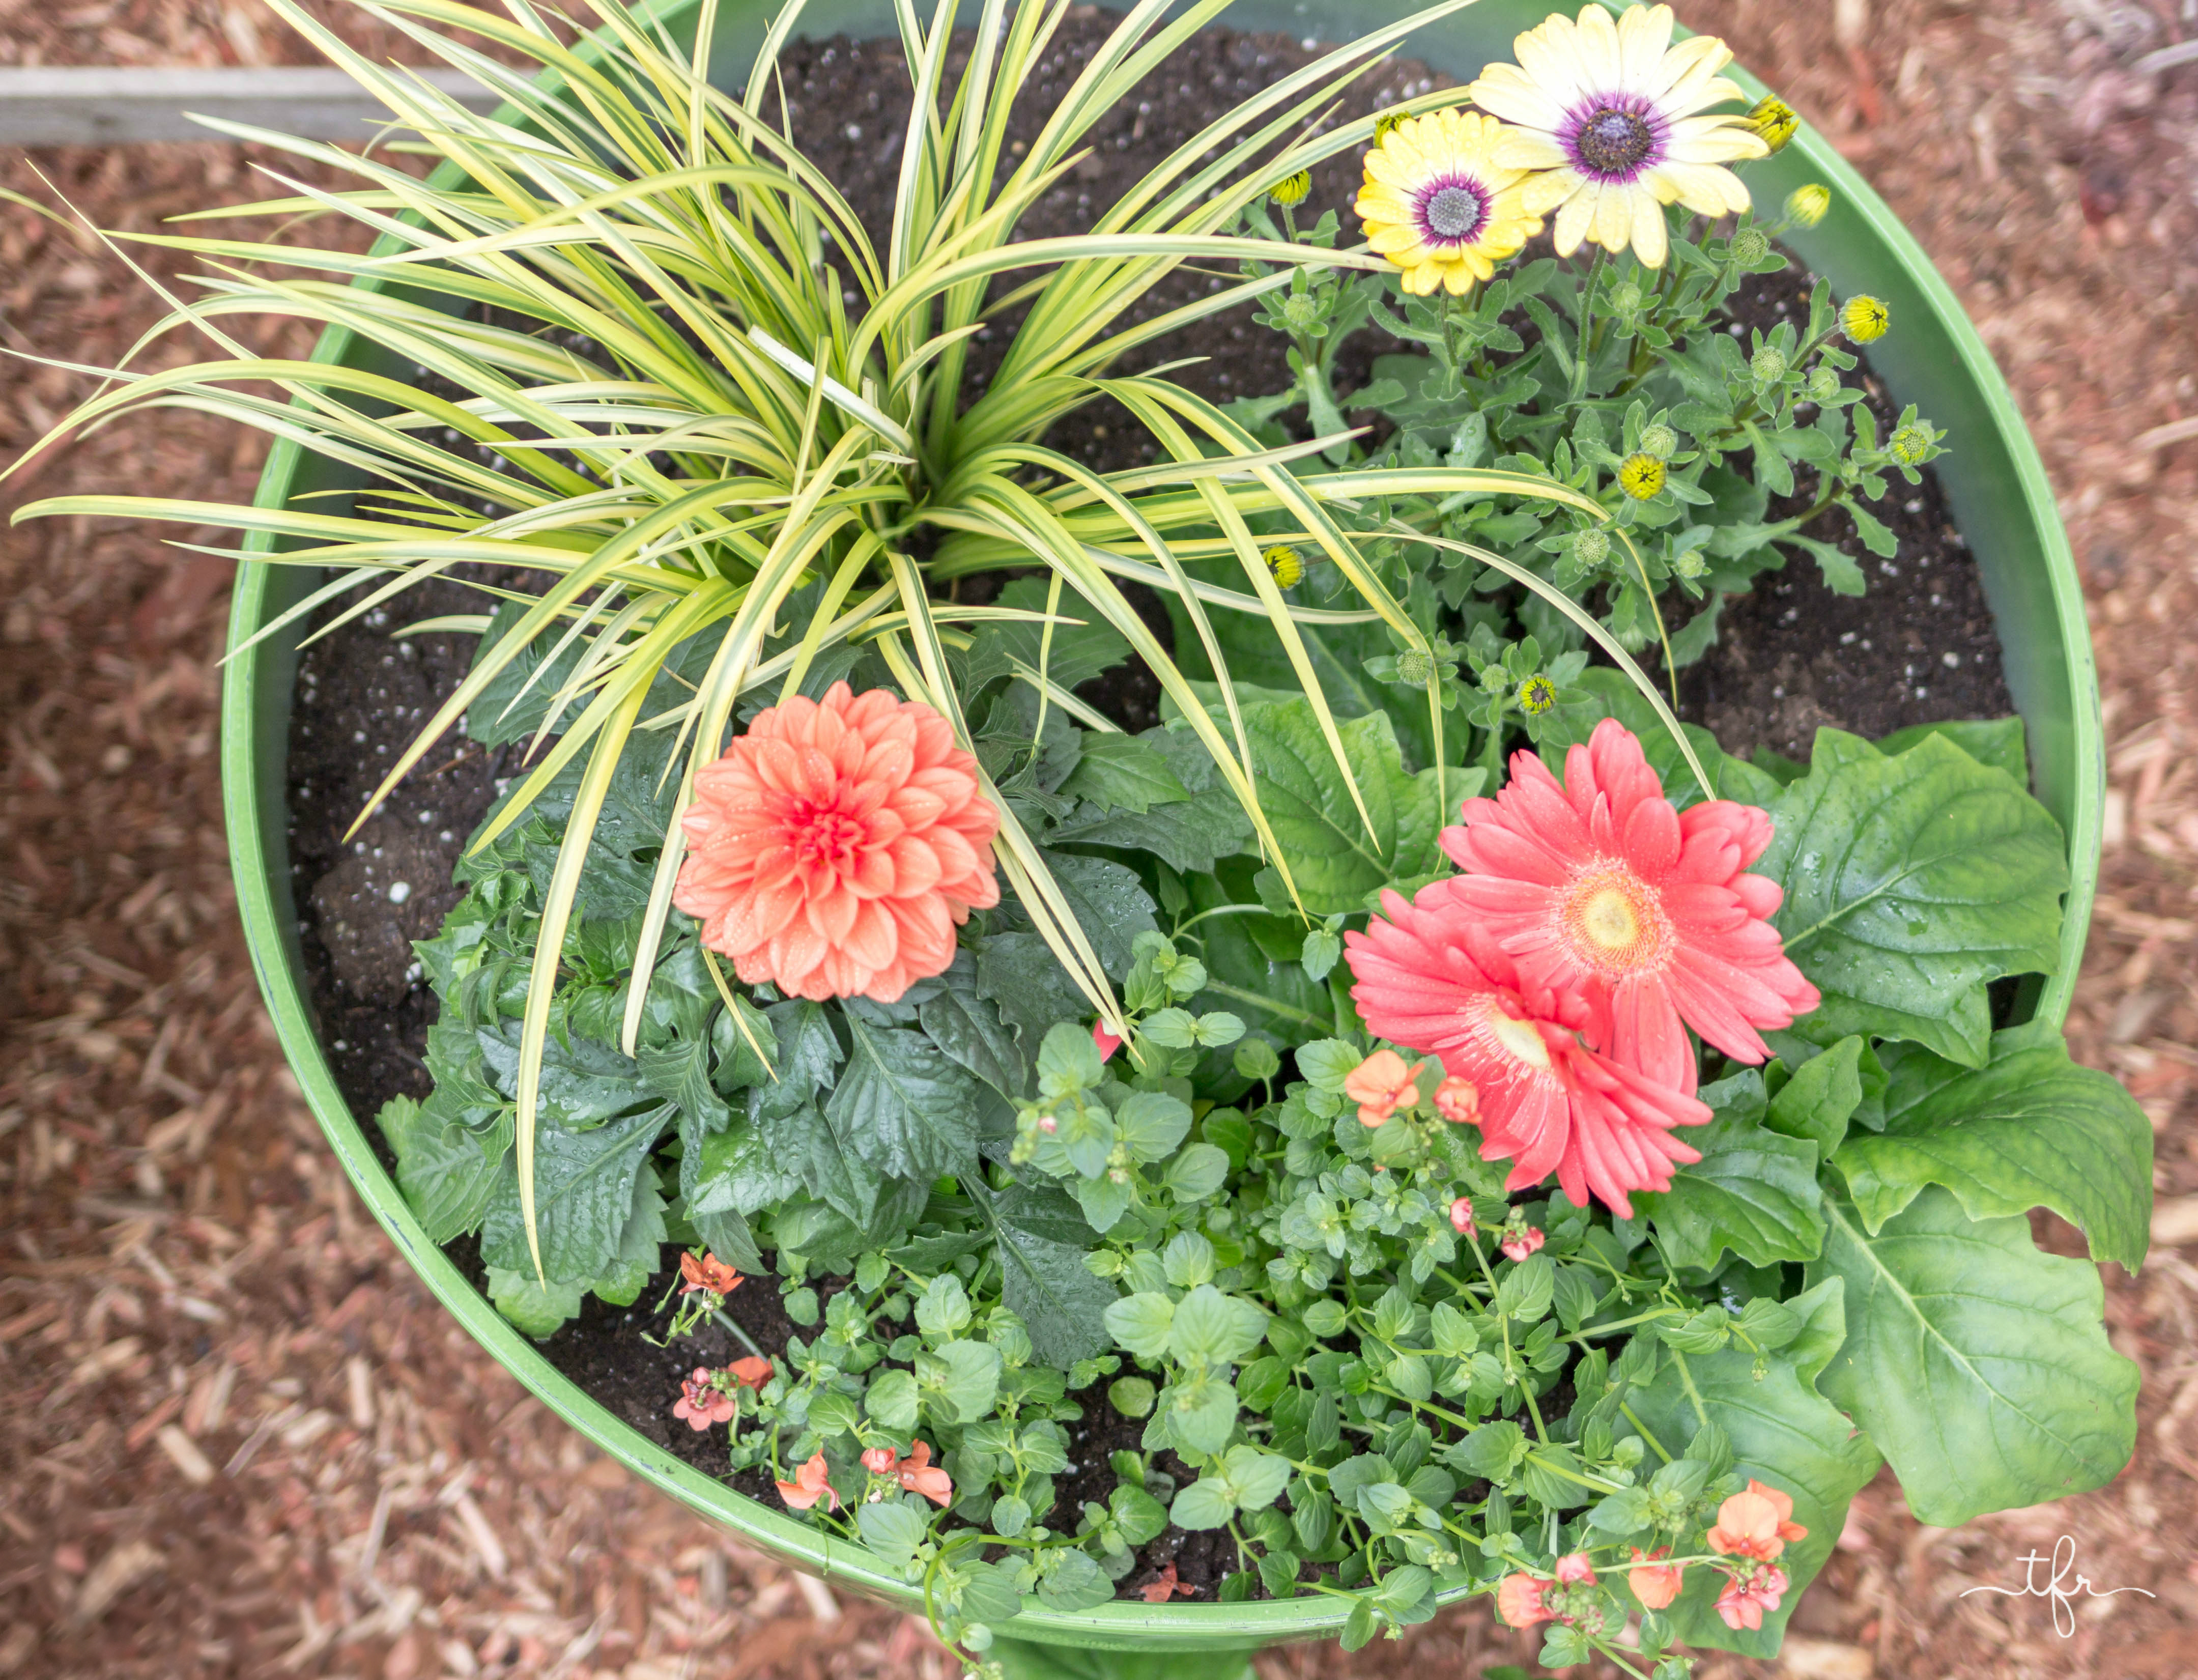 Fill your pots with quality soil specifically made for containers. Don't use just regular old soil from your garden.  It isn't filled with the proper nutrients to sustain healthy plants throughout the season.